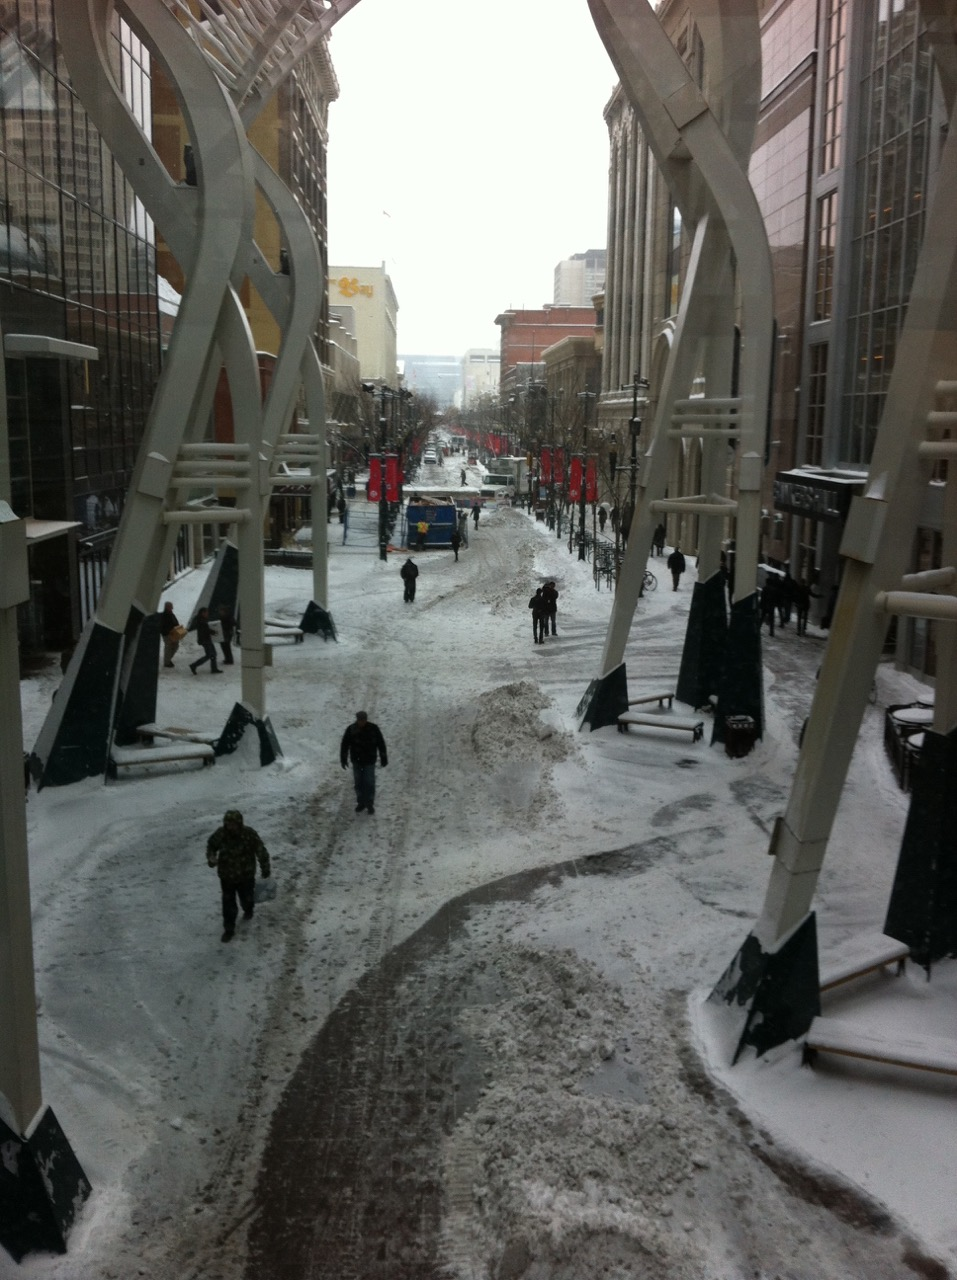 Stephen Avenue is a inhospitable place in the winter when it cold and windy.